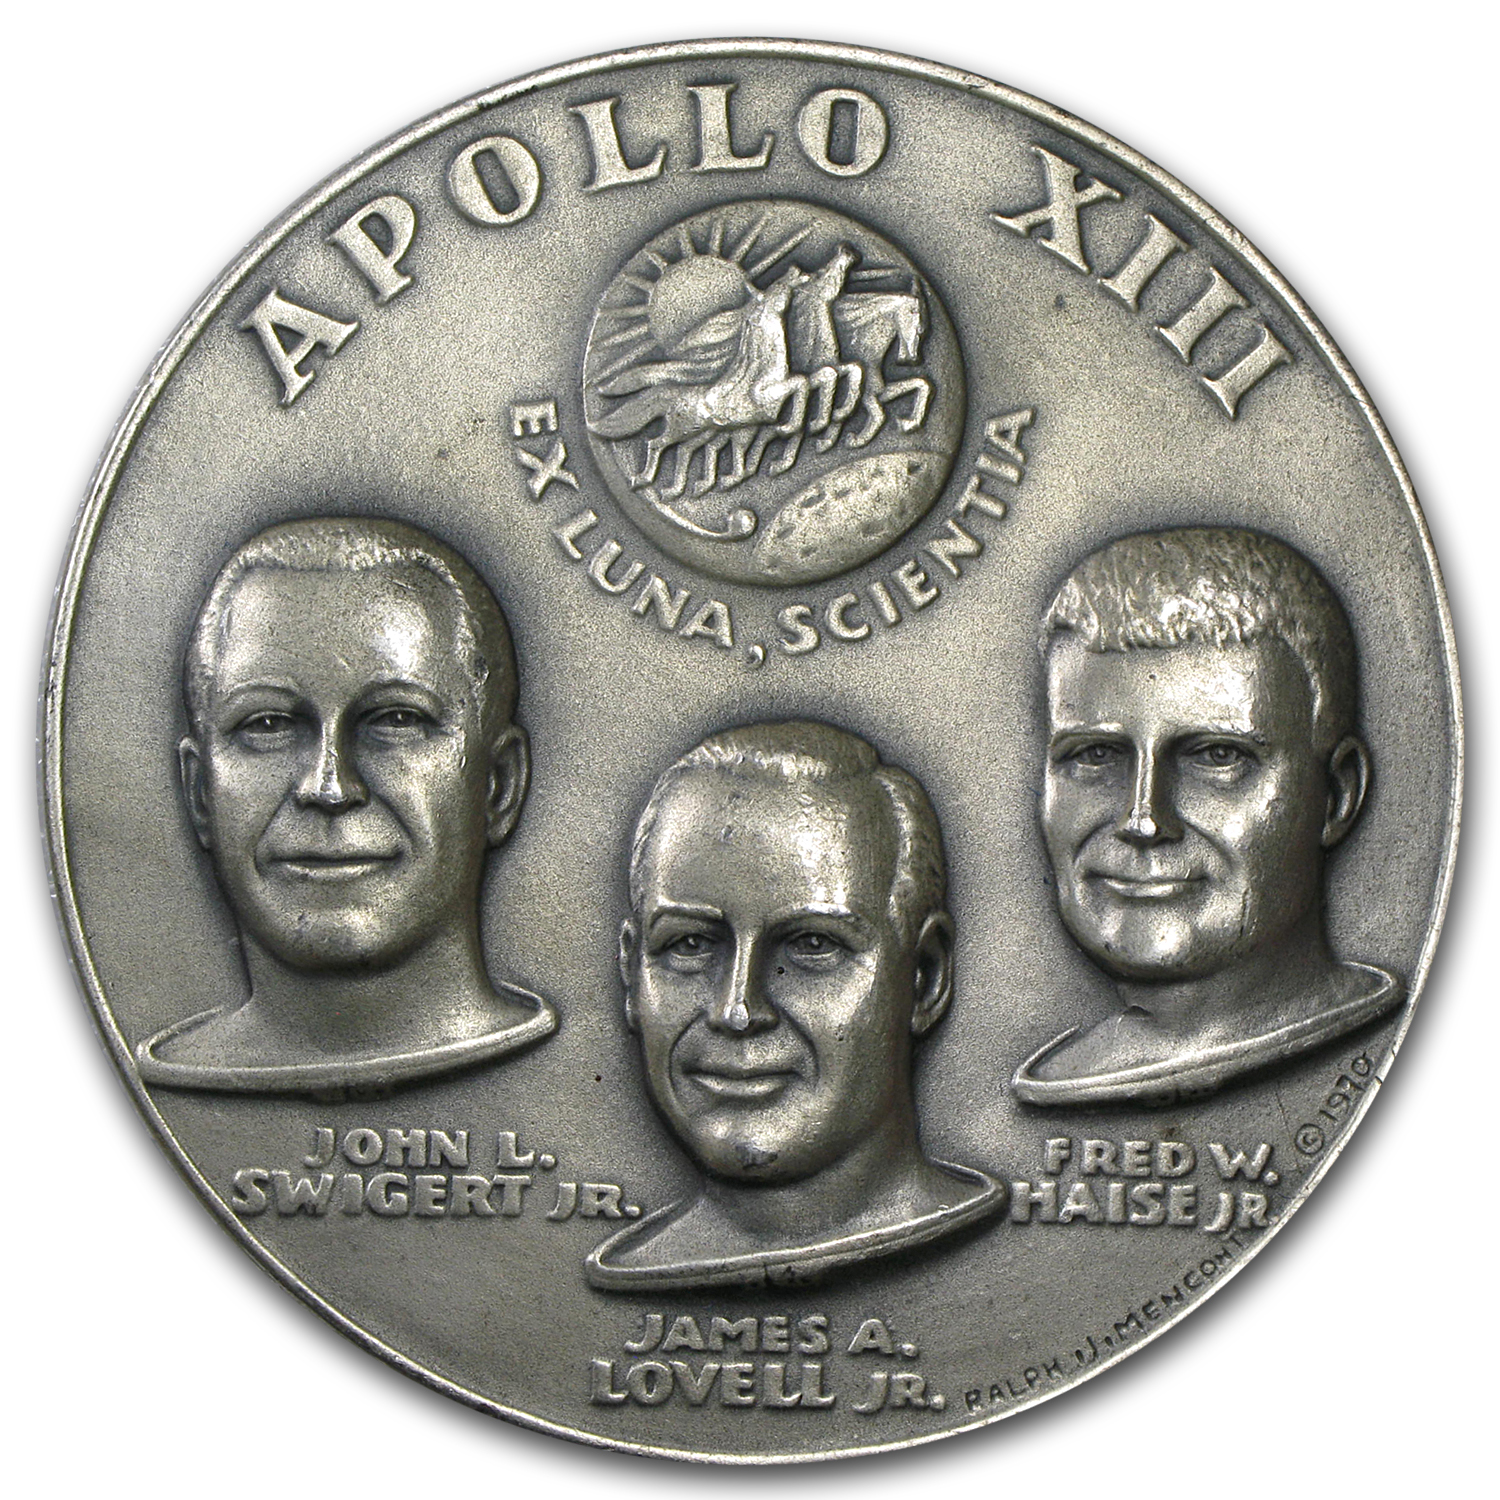 4.835 oz Silver Round - APOLLO 13